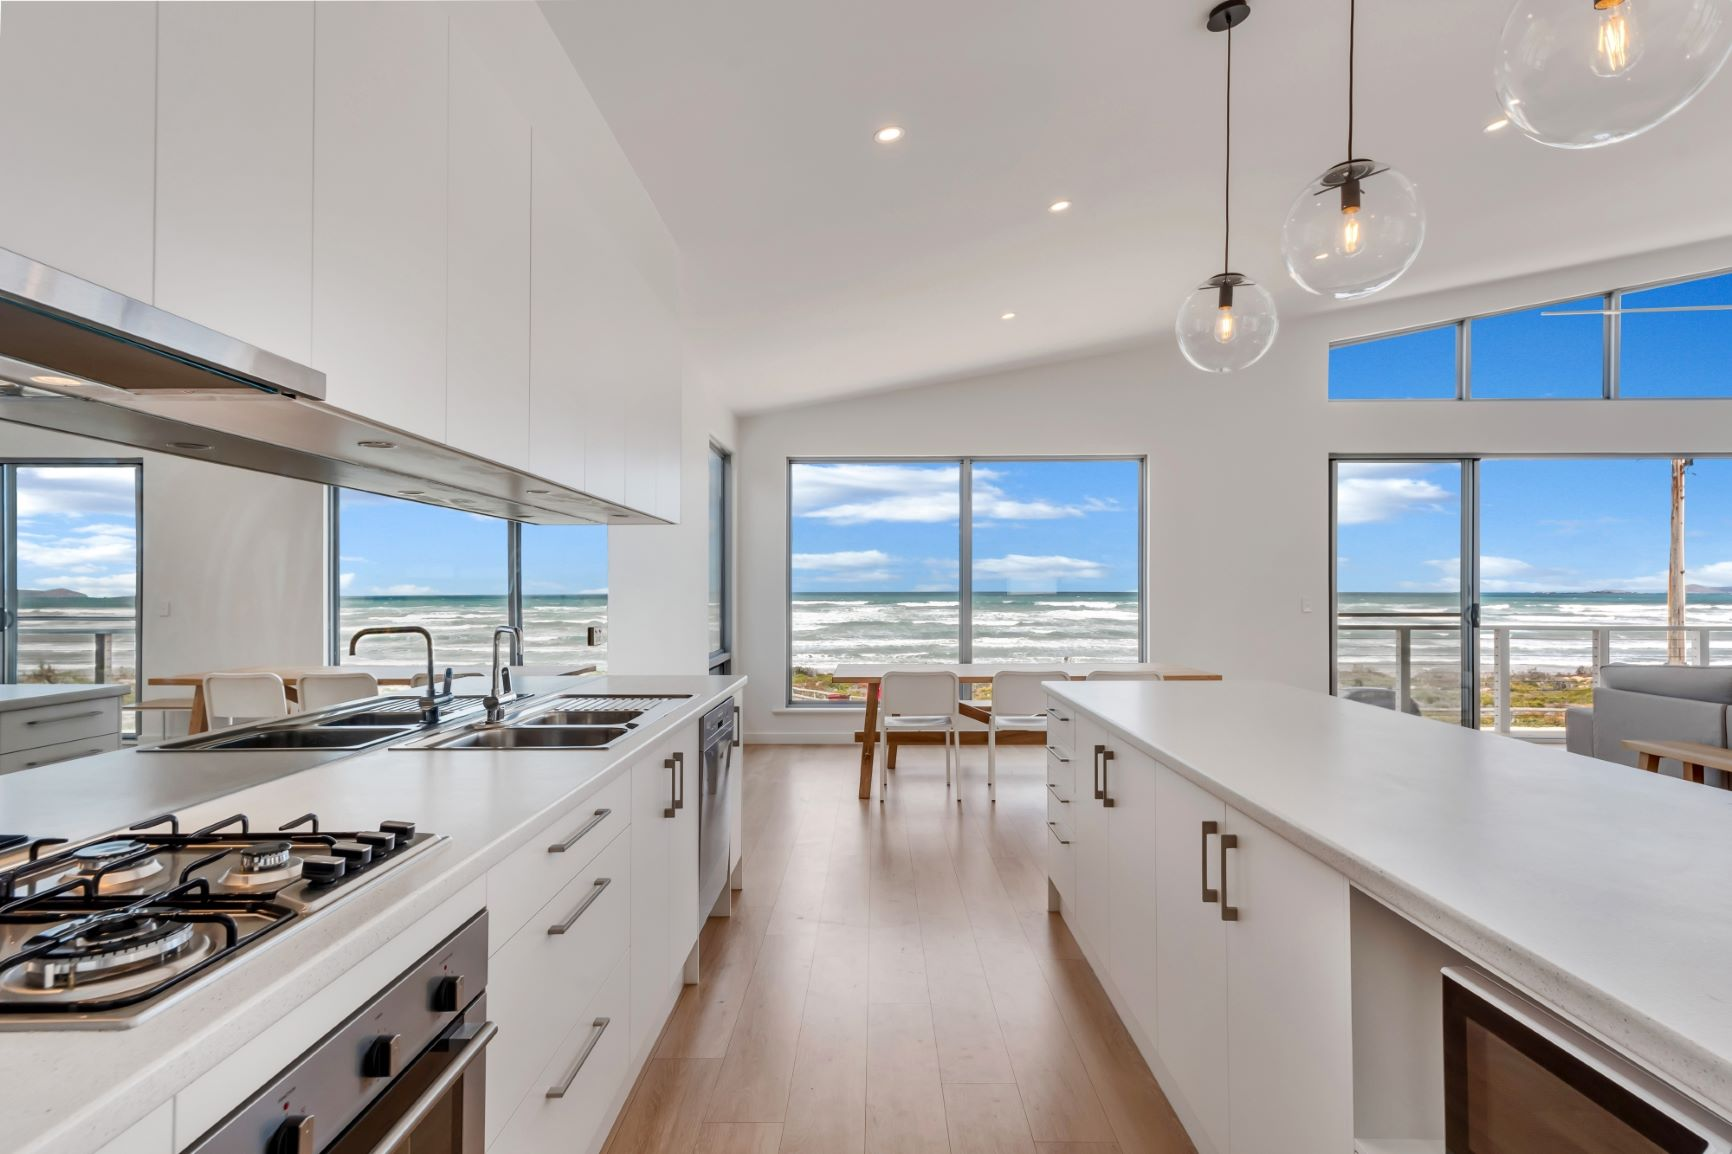 Award Winning, Custom Home, New Home, Two Storey, Builders, Design, Middleton SA, Fleurieu, Large Windows, Gas Stove Top, Modern Kitchen, Counter Tops, Ocean View